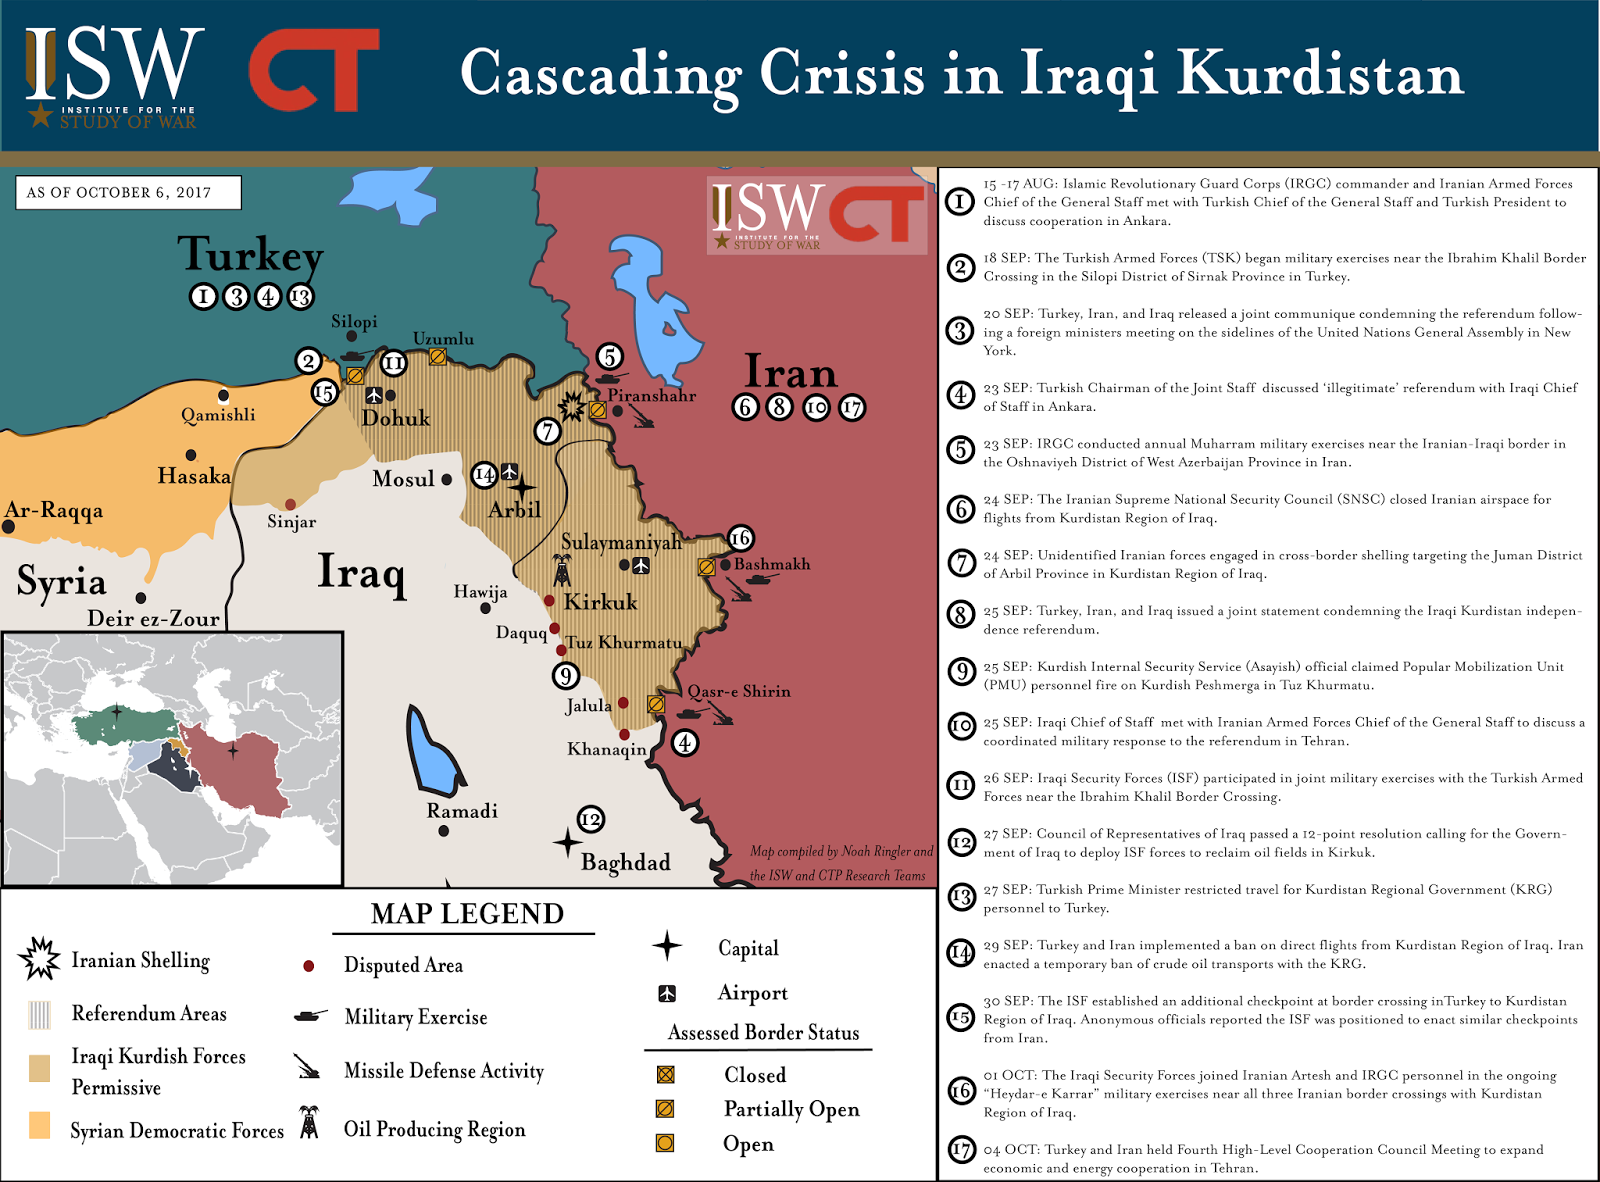 a study of articles about crisis in iraq